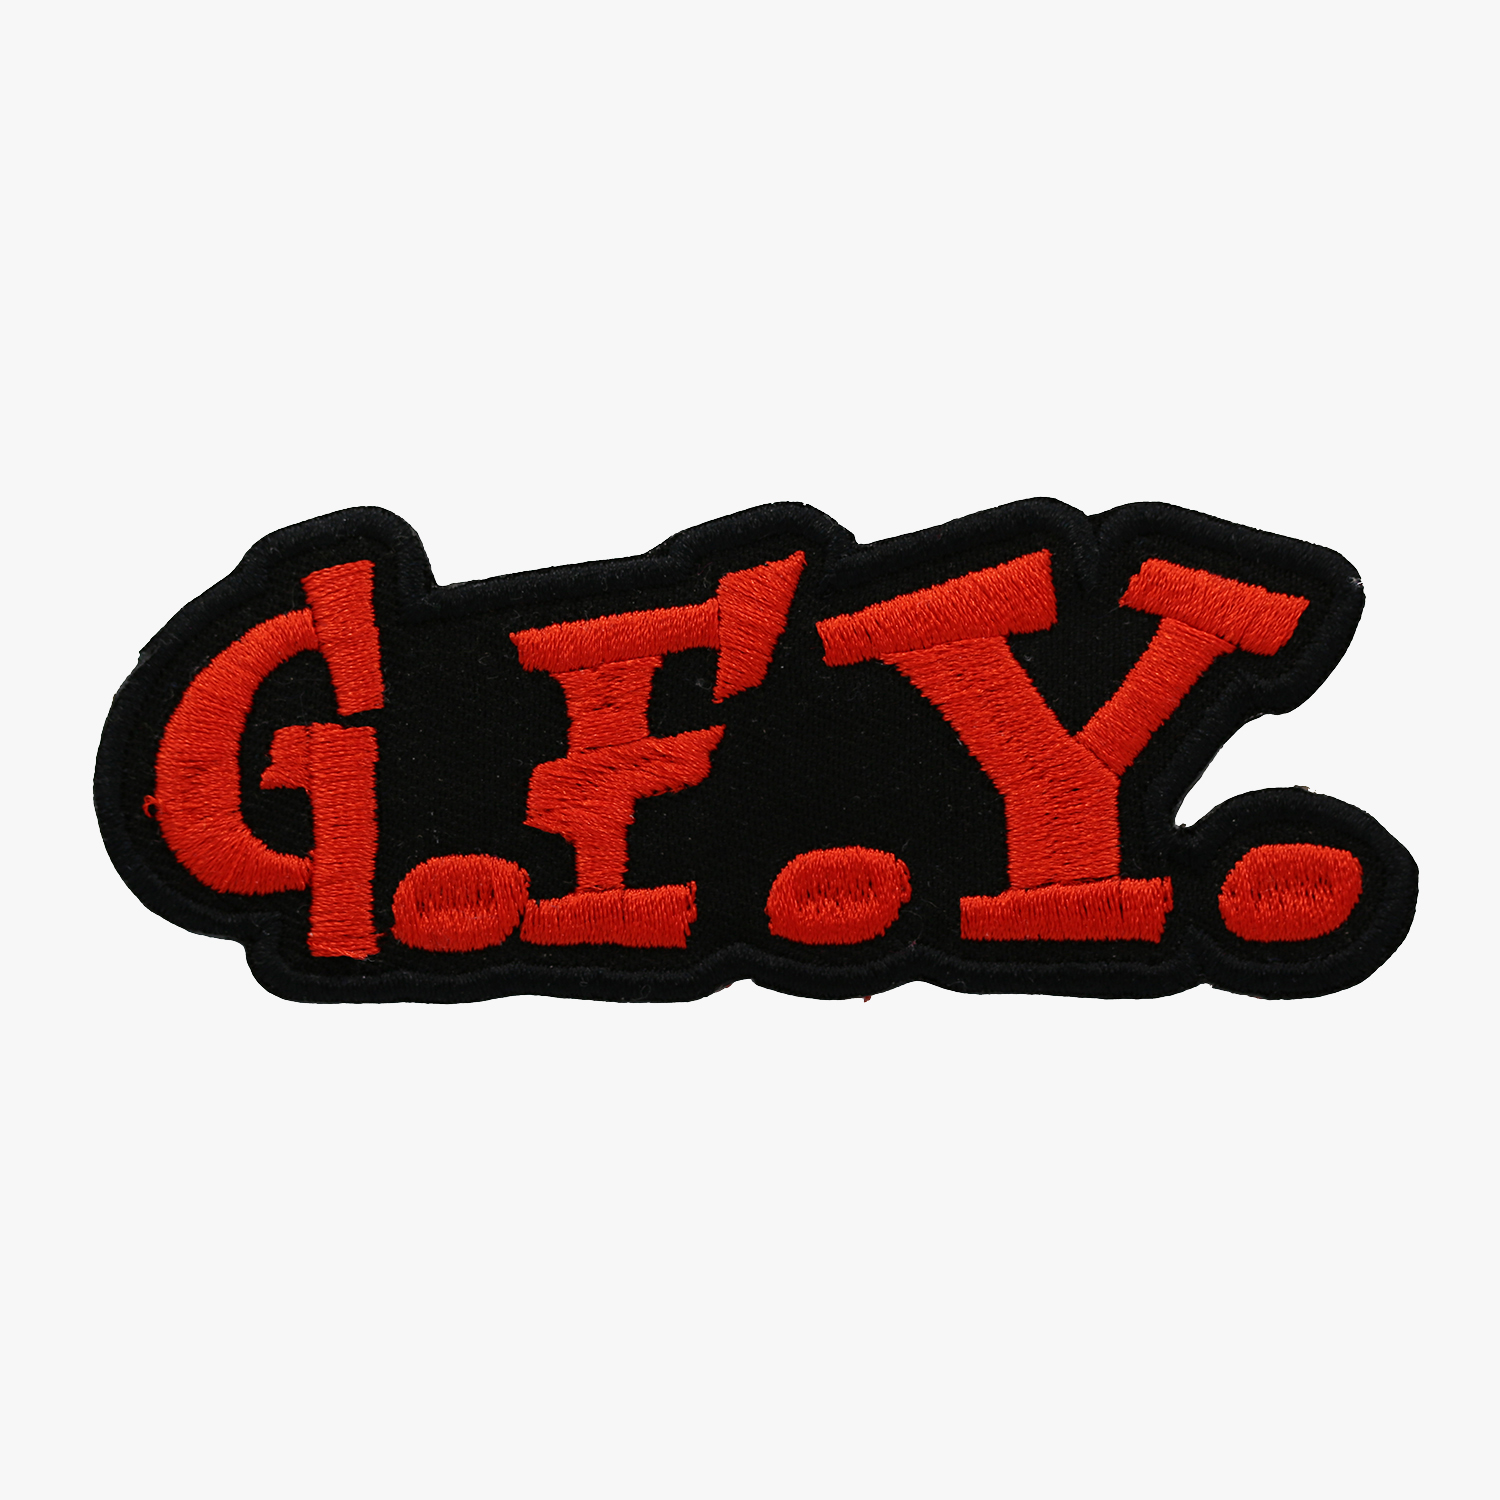 GFY Go F**** Yourself Motorcycle Club Embroidered Biker Patch